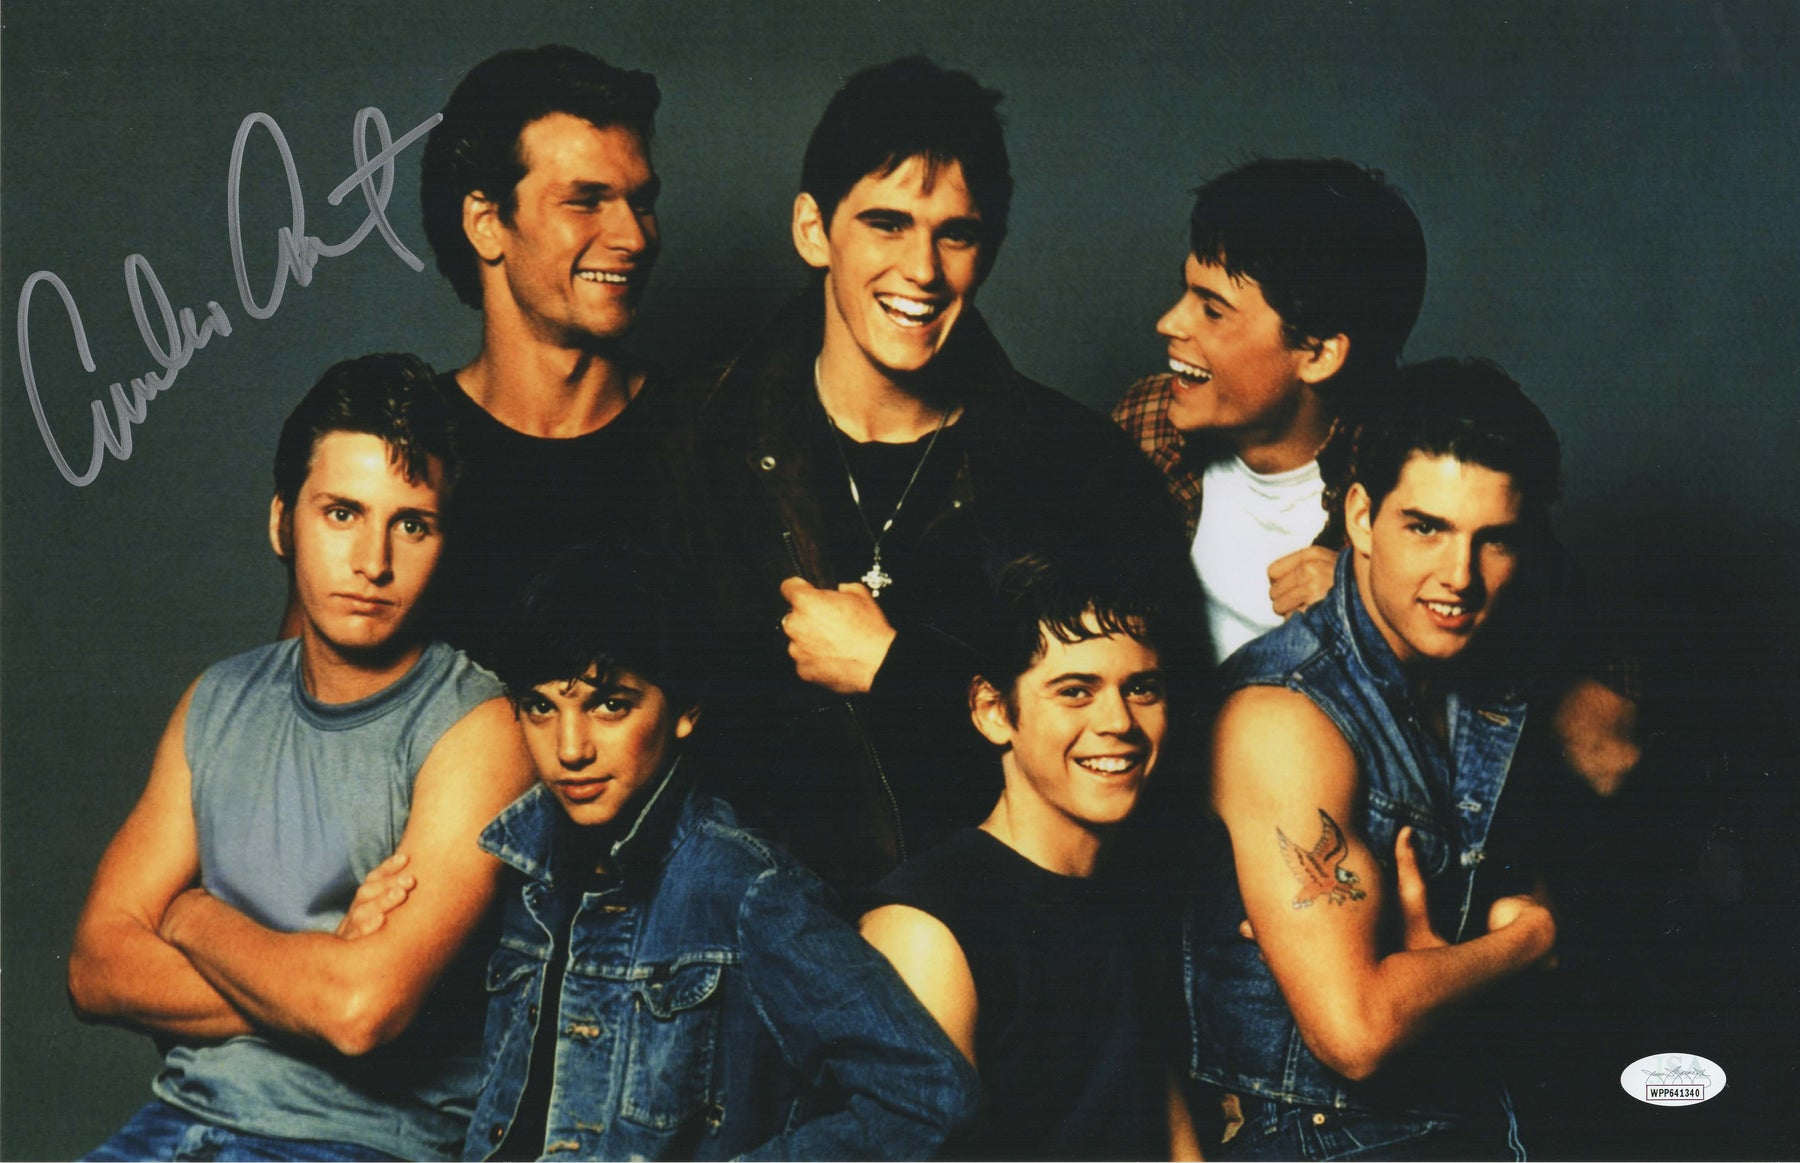 Emilio Estevez Autograph 11x17 Photo The Outsiders Signed JSA COA 2